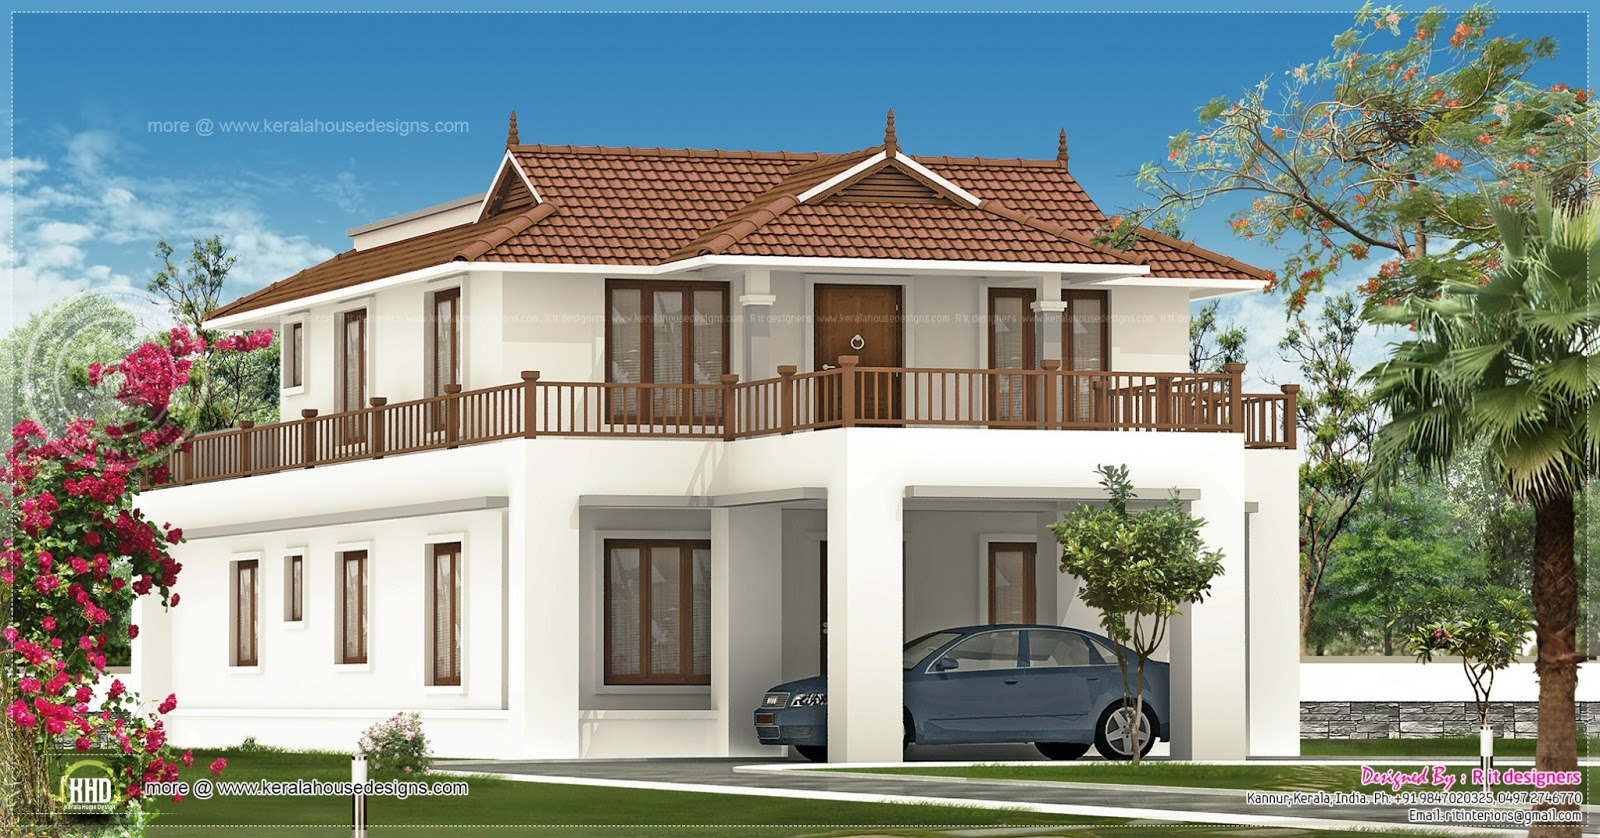 2820 square feet house exterior design home kerala plans for Home exterior design india residence houses